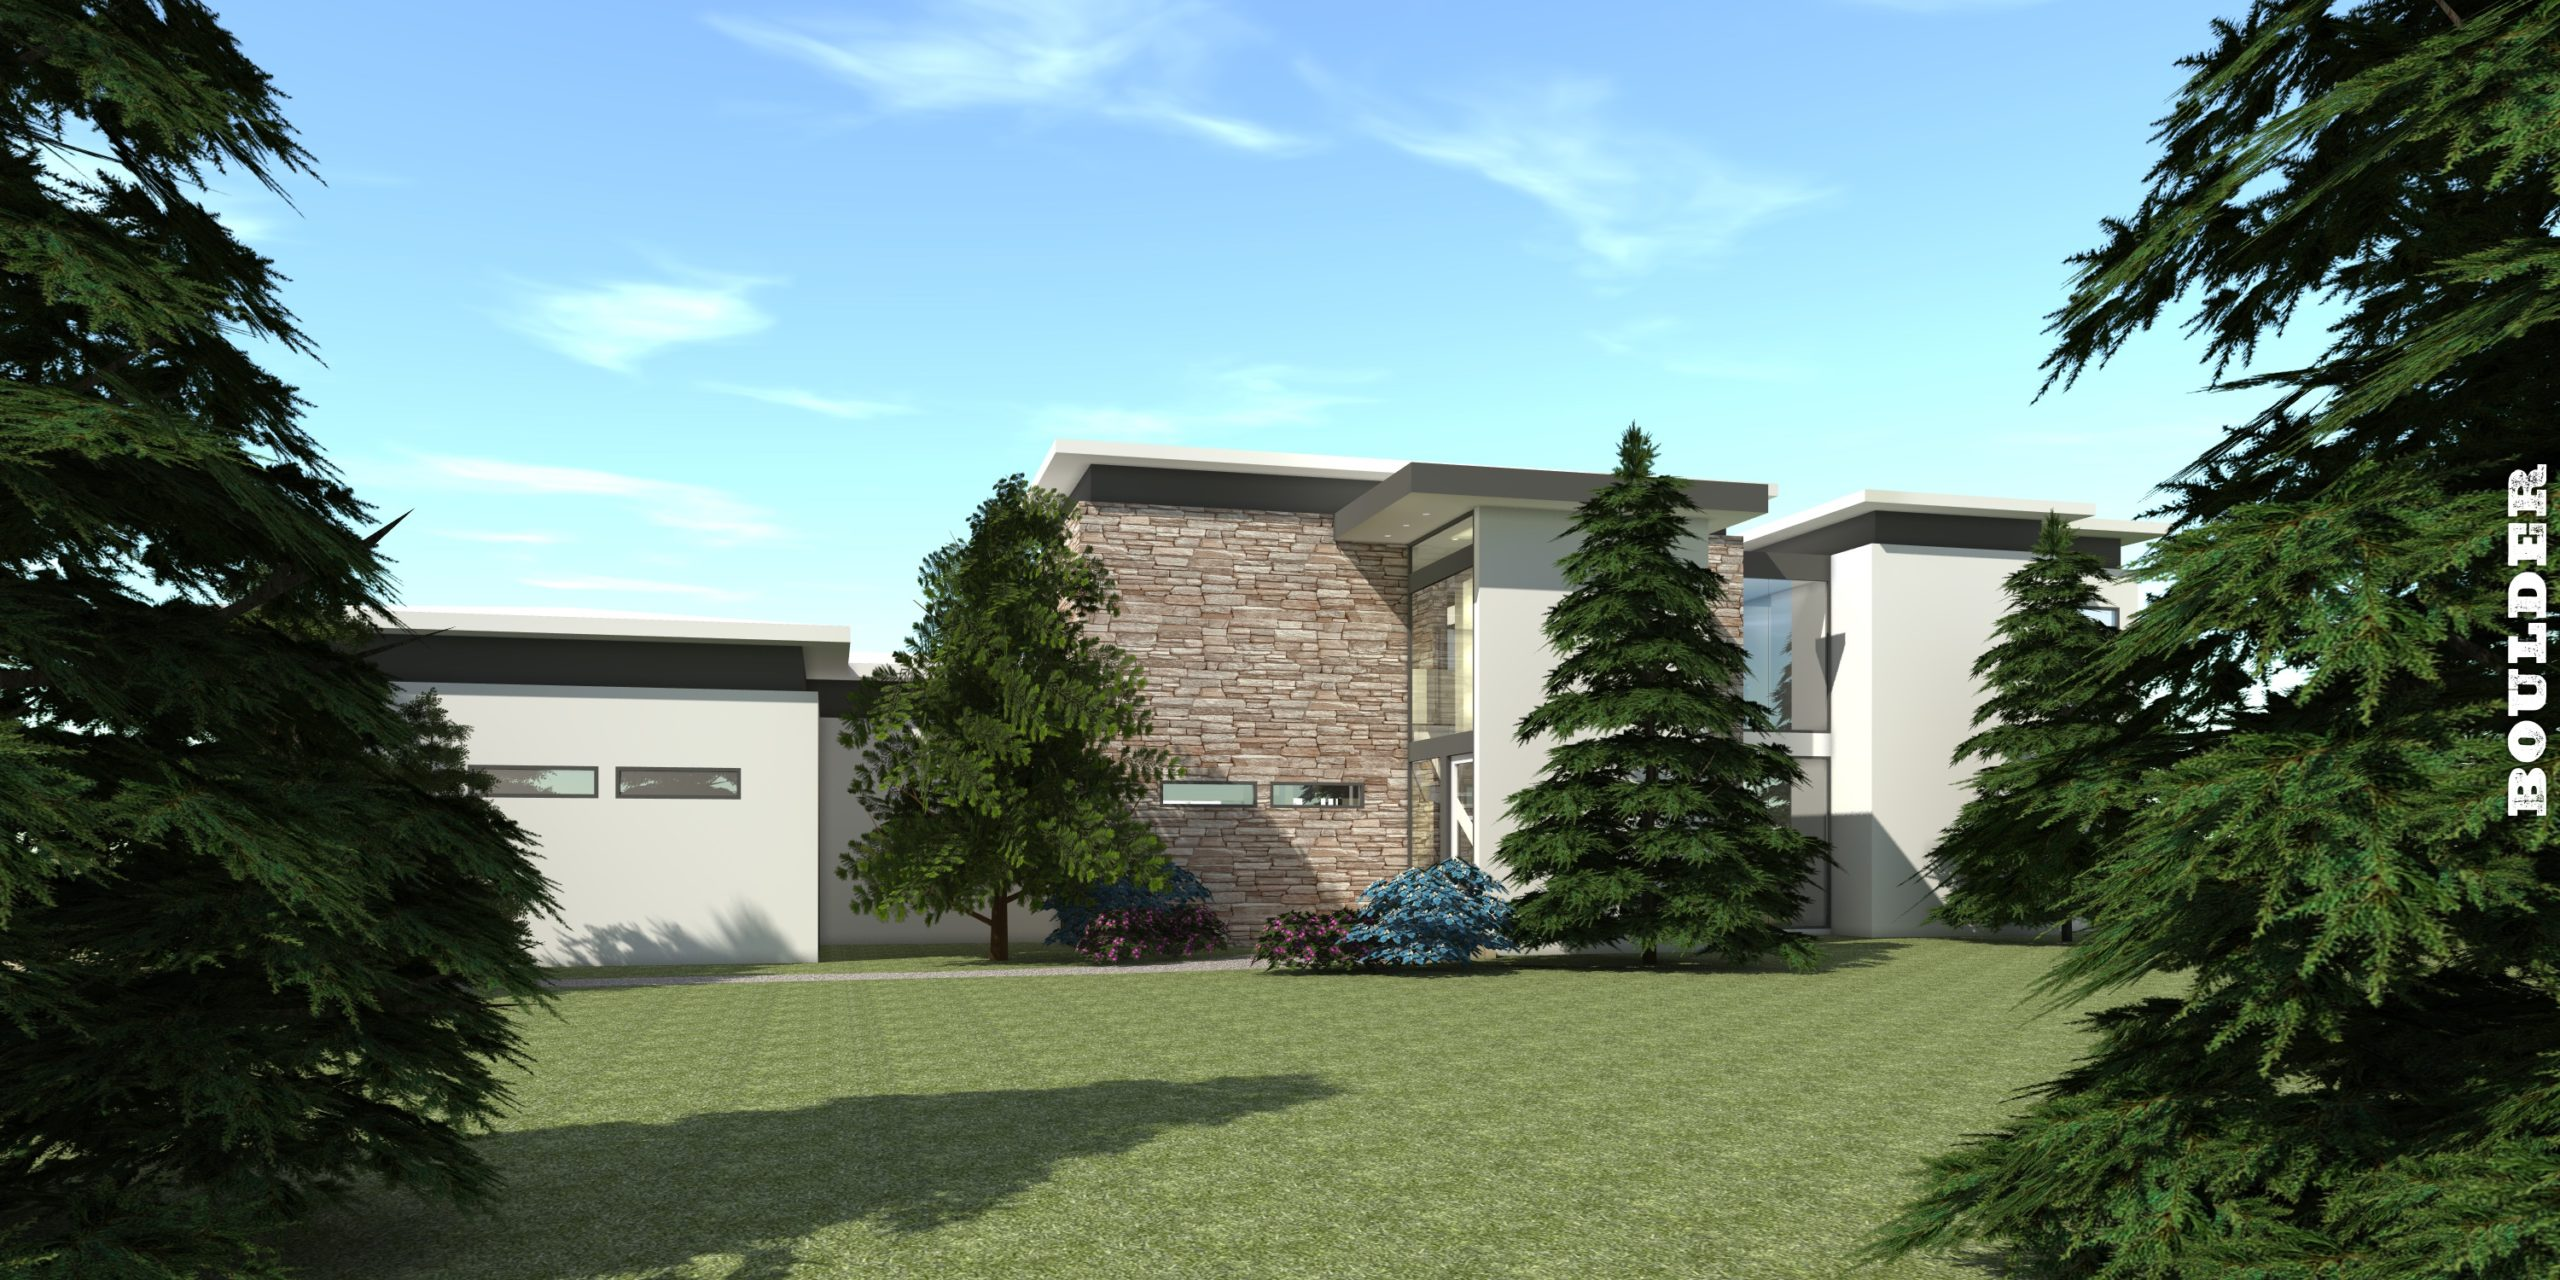 4 Bedroom Modern Home with Pool Cabana. Boulder by Tyree House Plans.